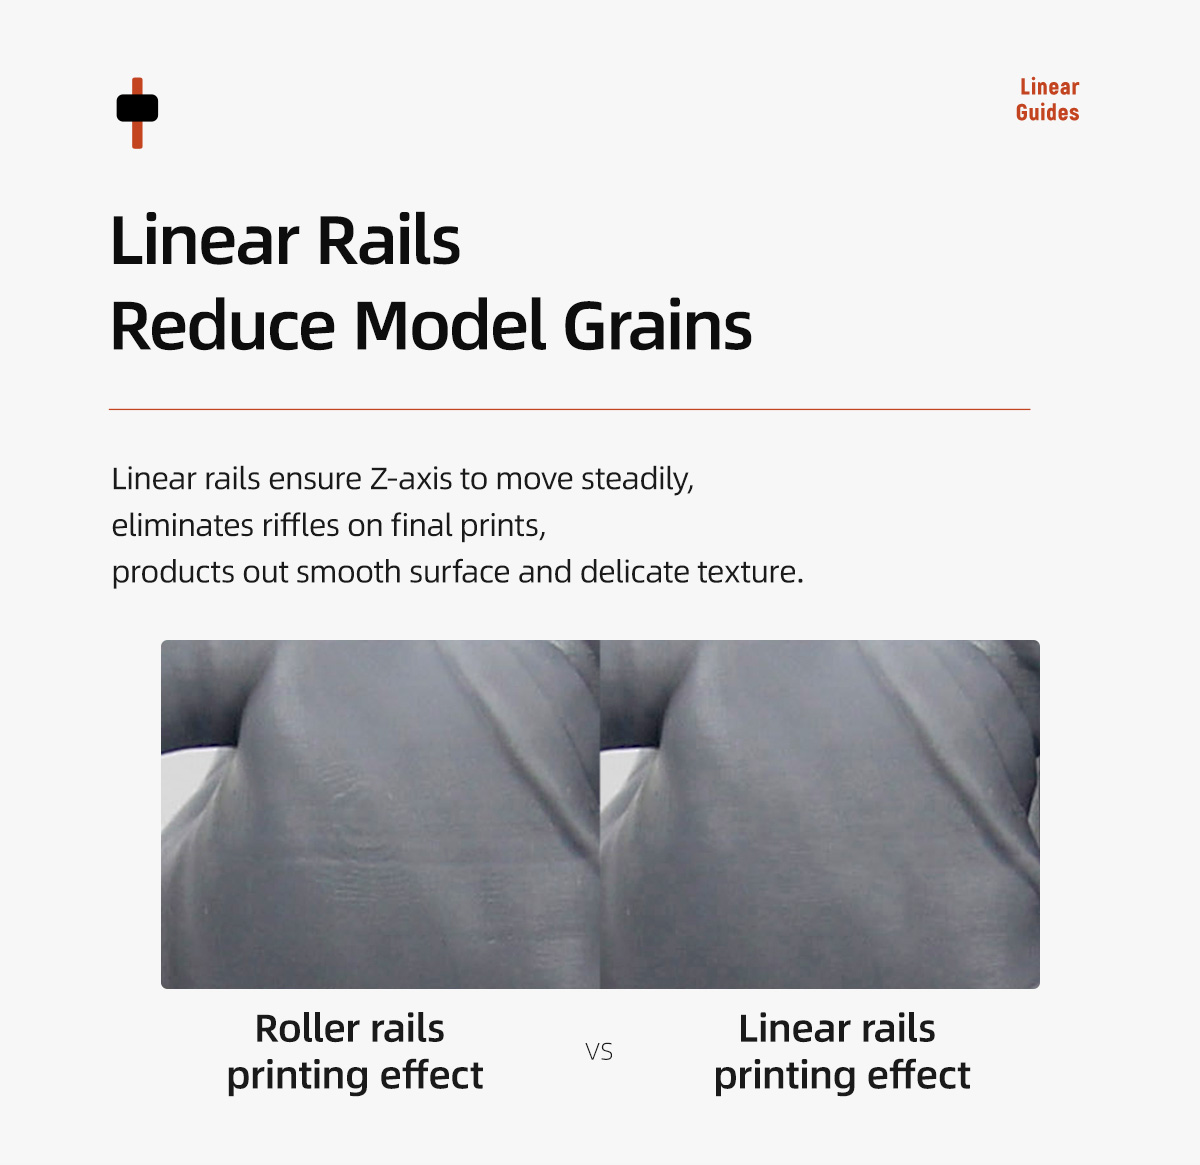 Linear rails ensure Z-axis to move steadily, eliminate riffles on final prints, producing out smooth surface and delicate texture.